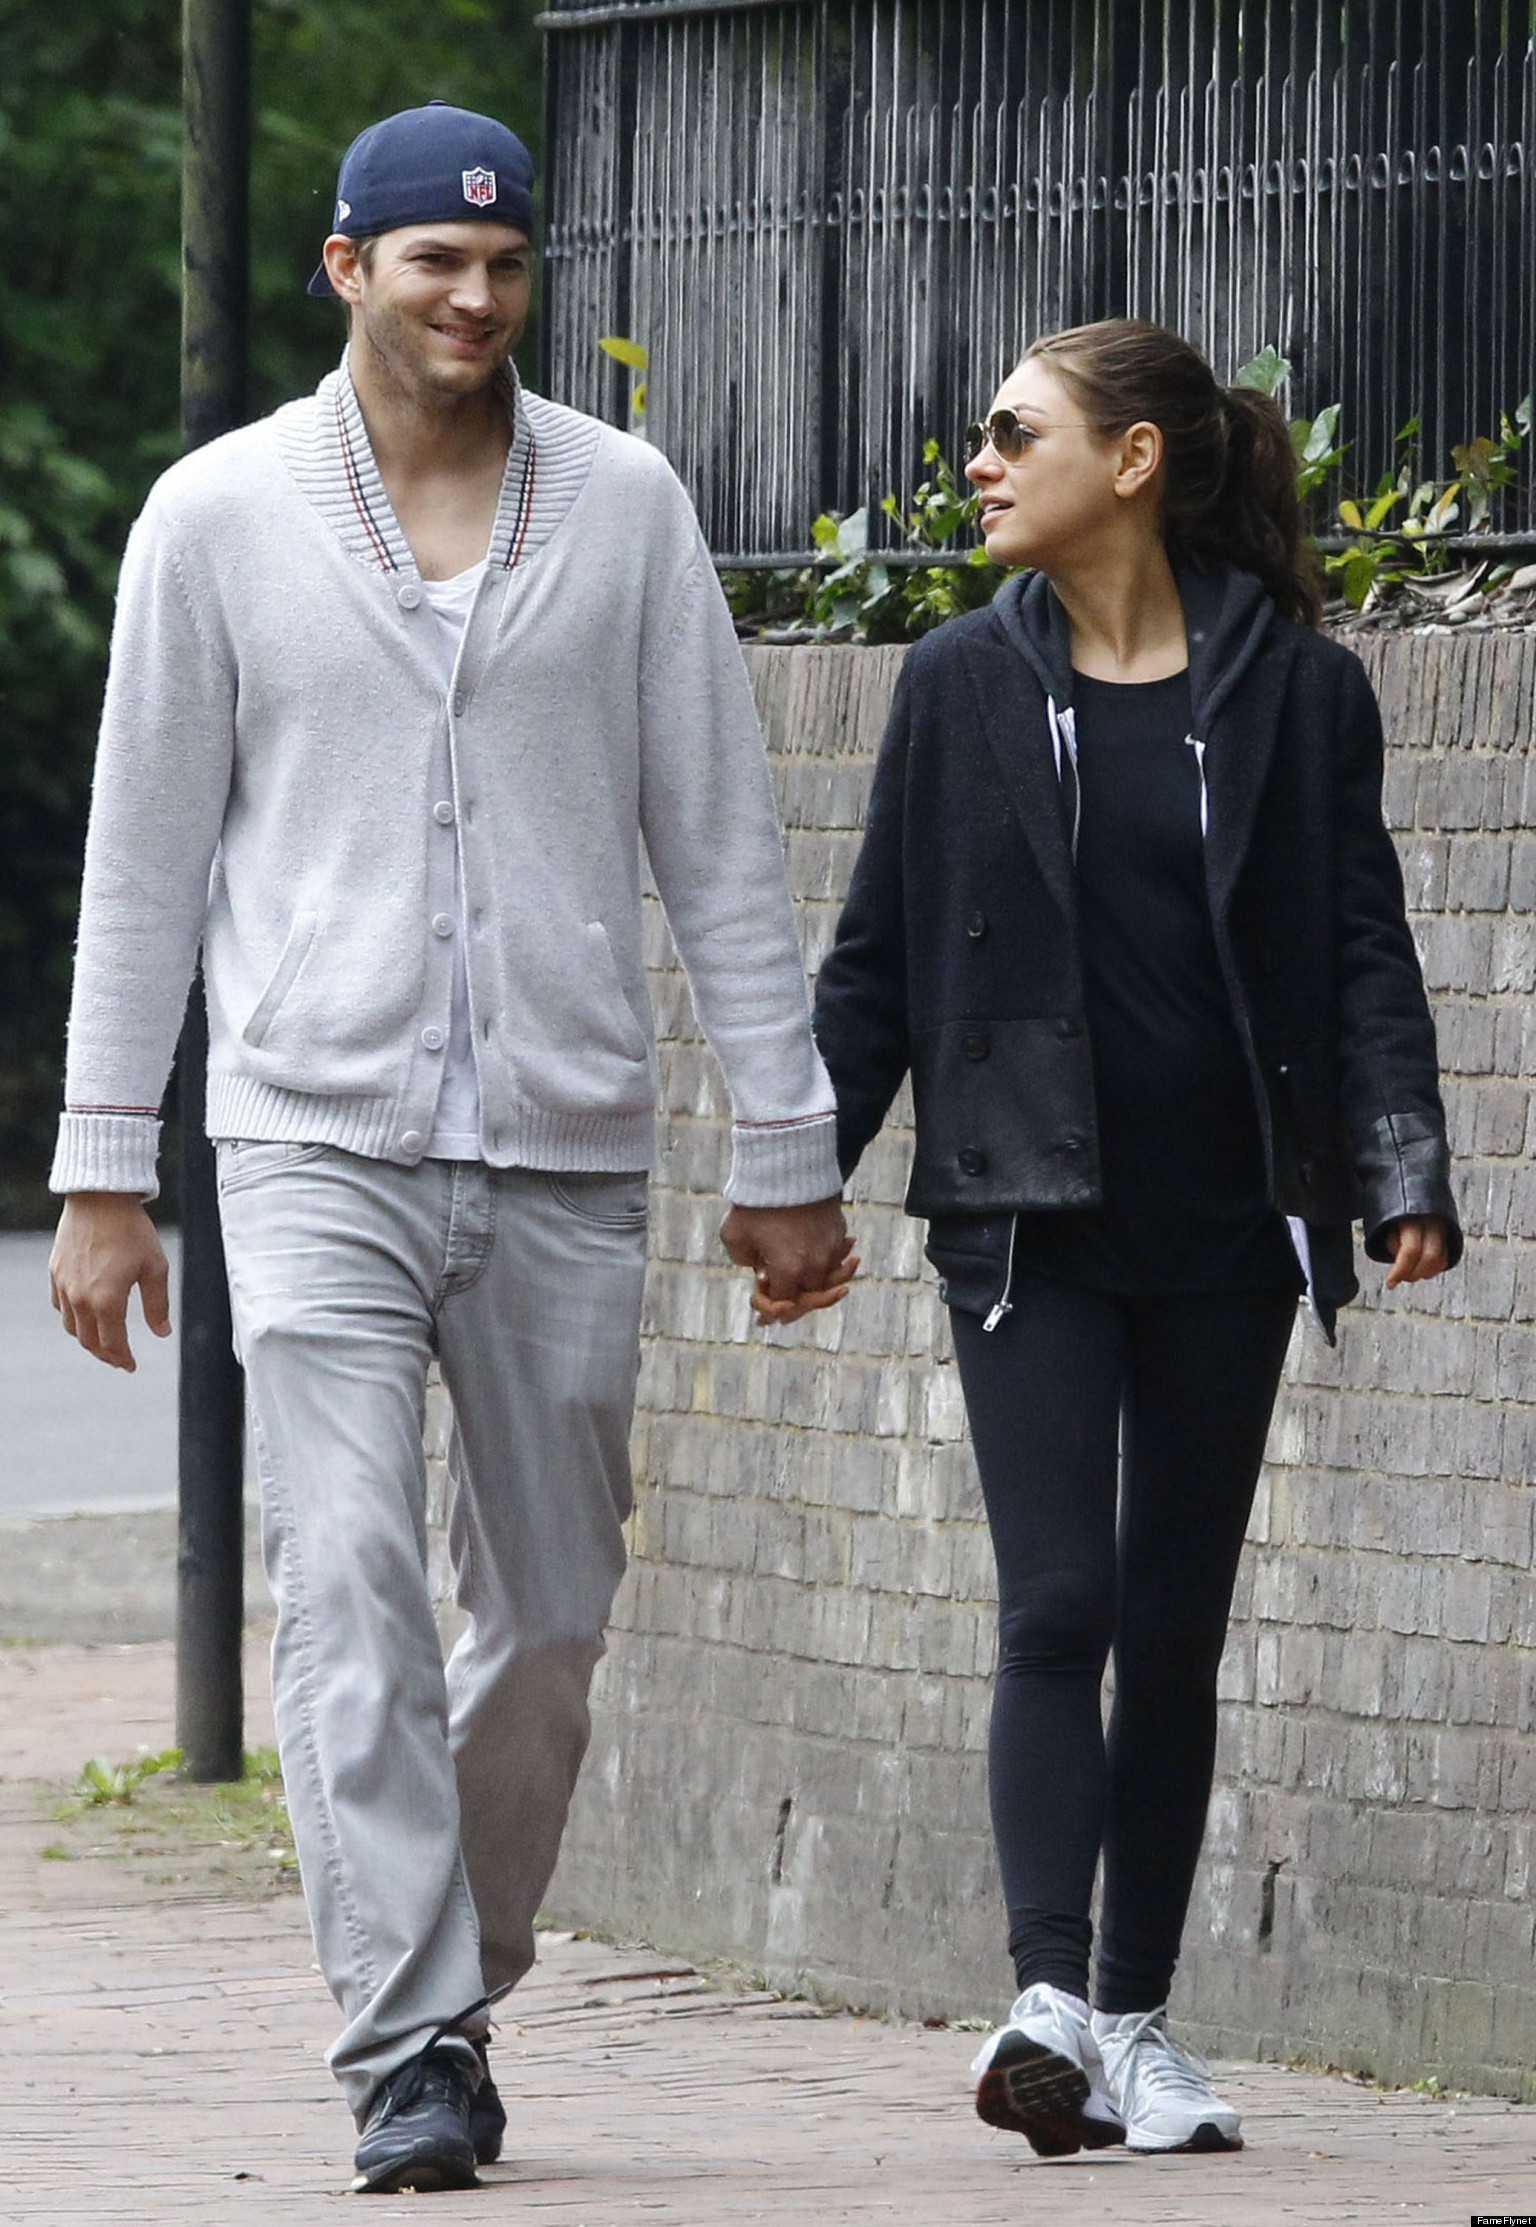 Mila Kunis And Ashton Kutcher Put Their Romance On Display